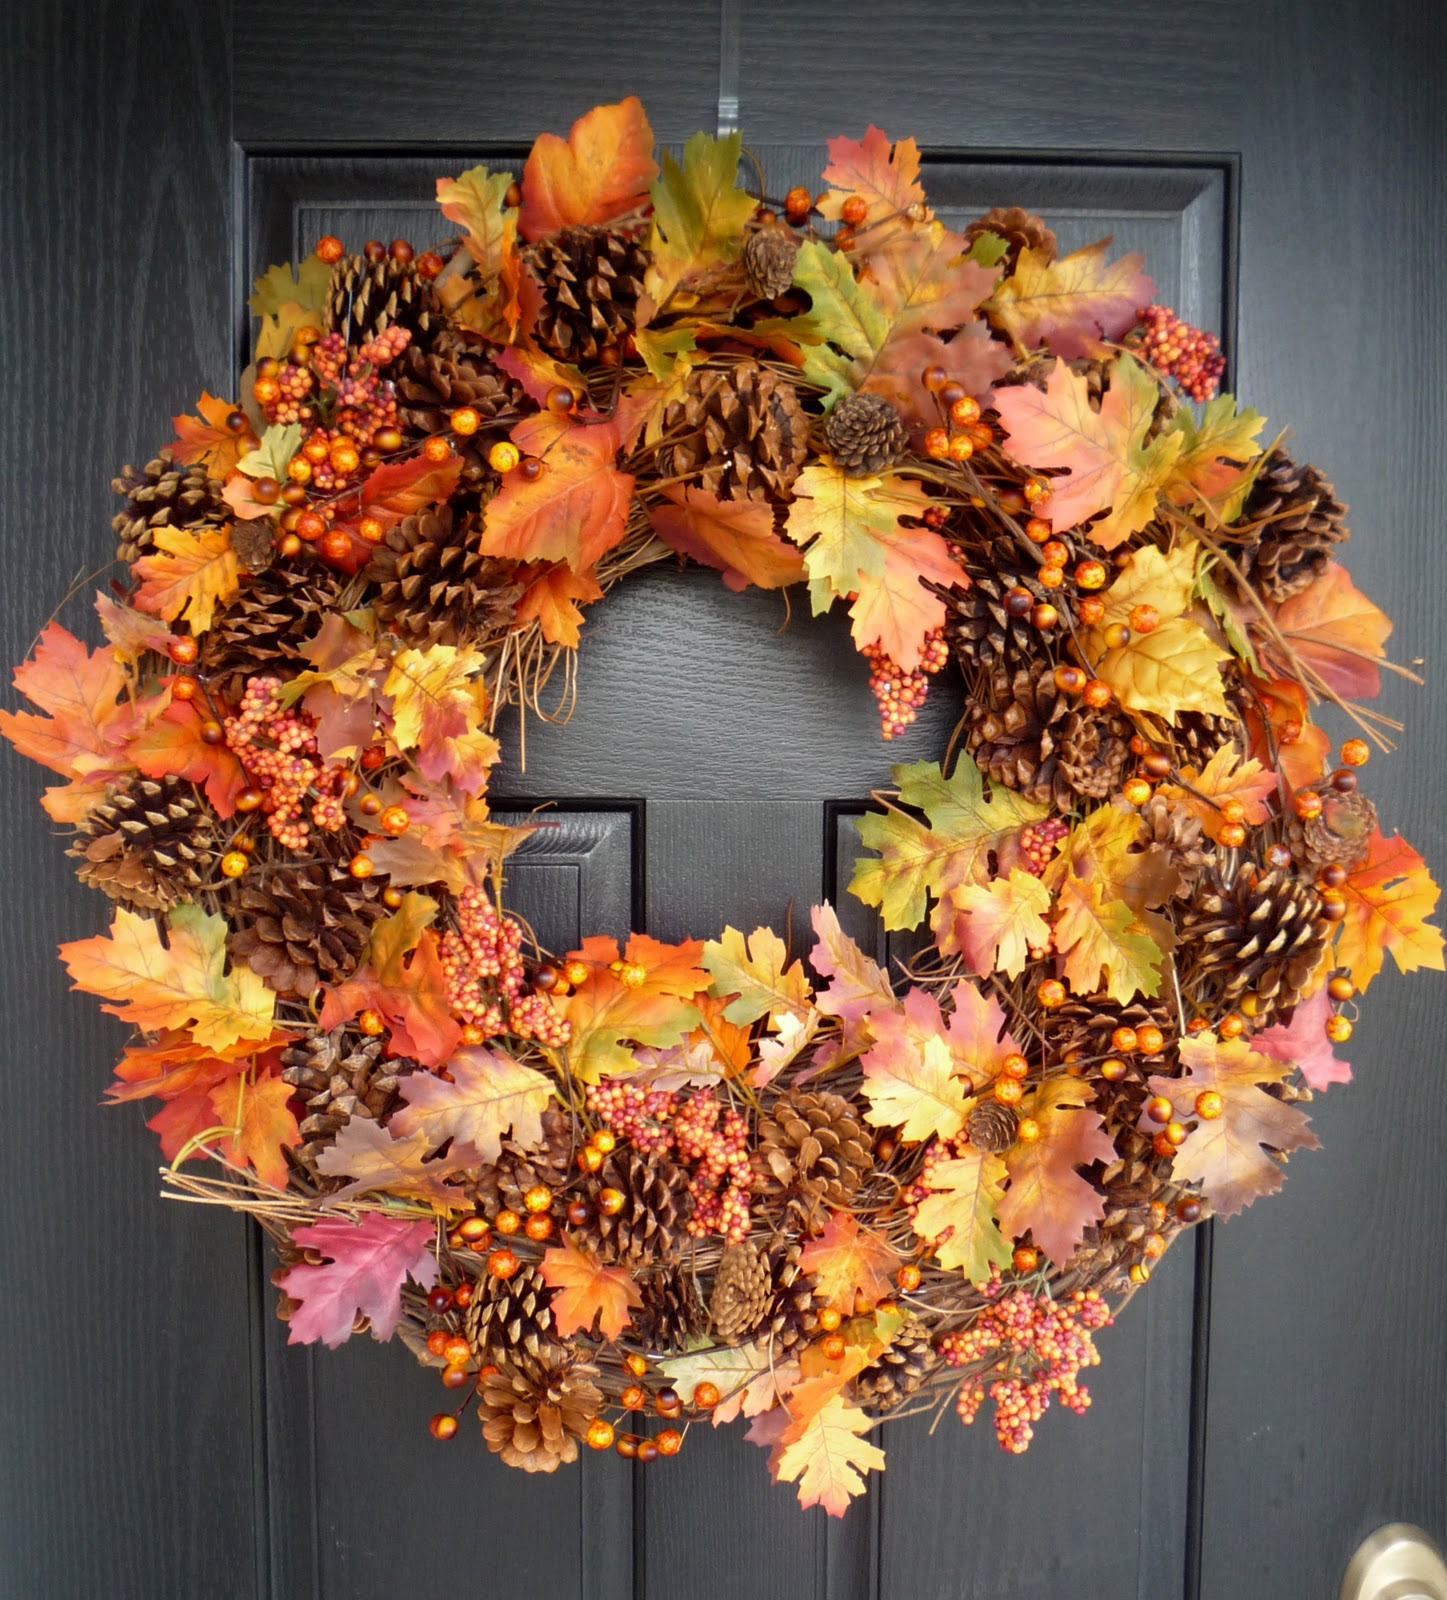 Thanksgiving decoration outdoor - Beautiful Wreath Design For Thanksgiving Decoration Outdoor With Fall Leave Domination With Fruit